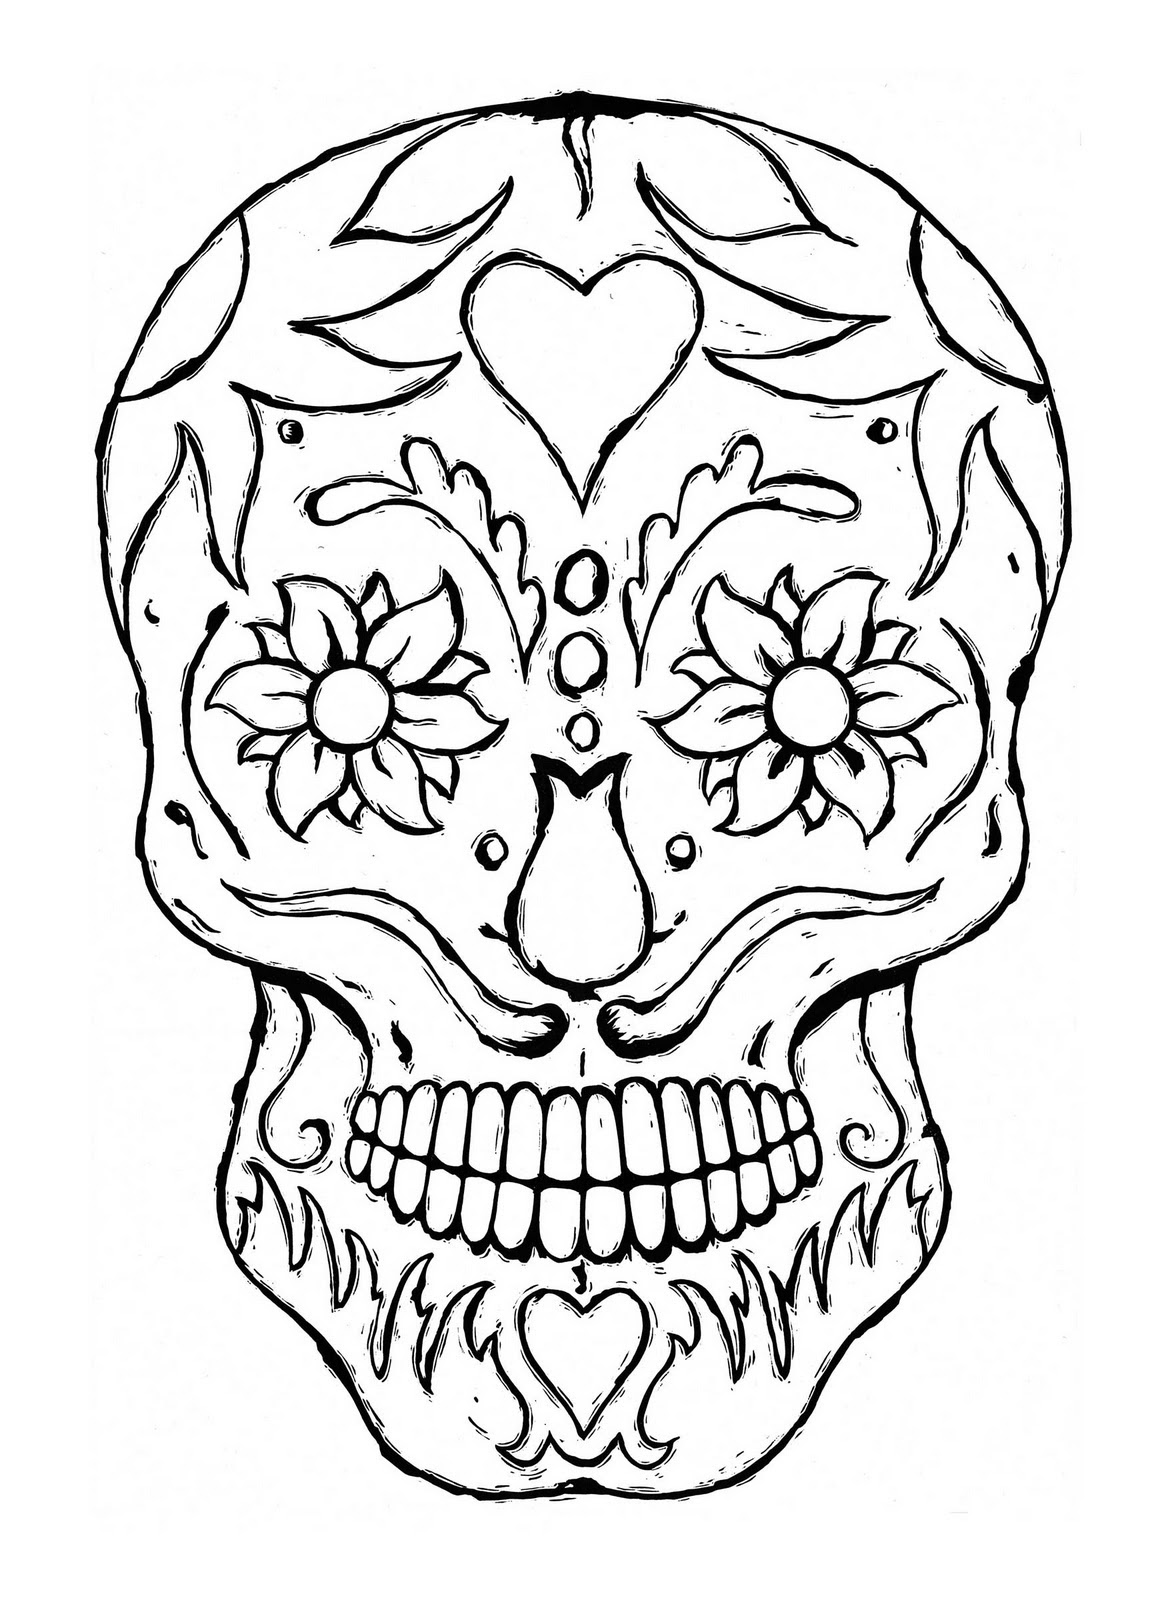 - Free Printable Skull Coloring Pages For Kids - Coloring Pages